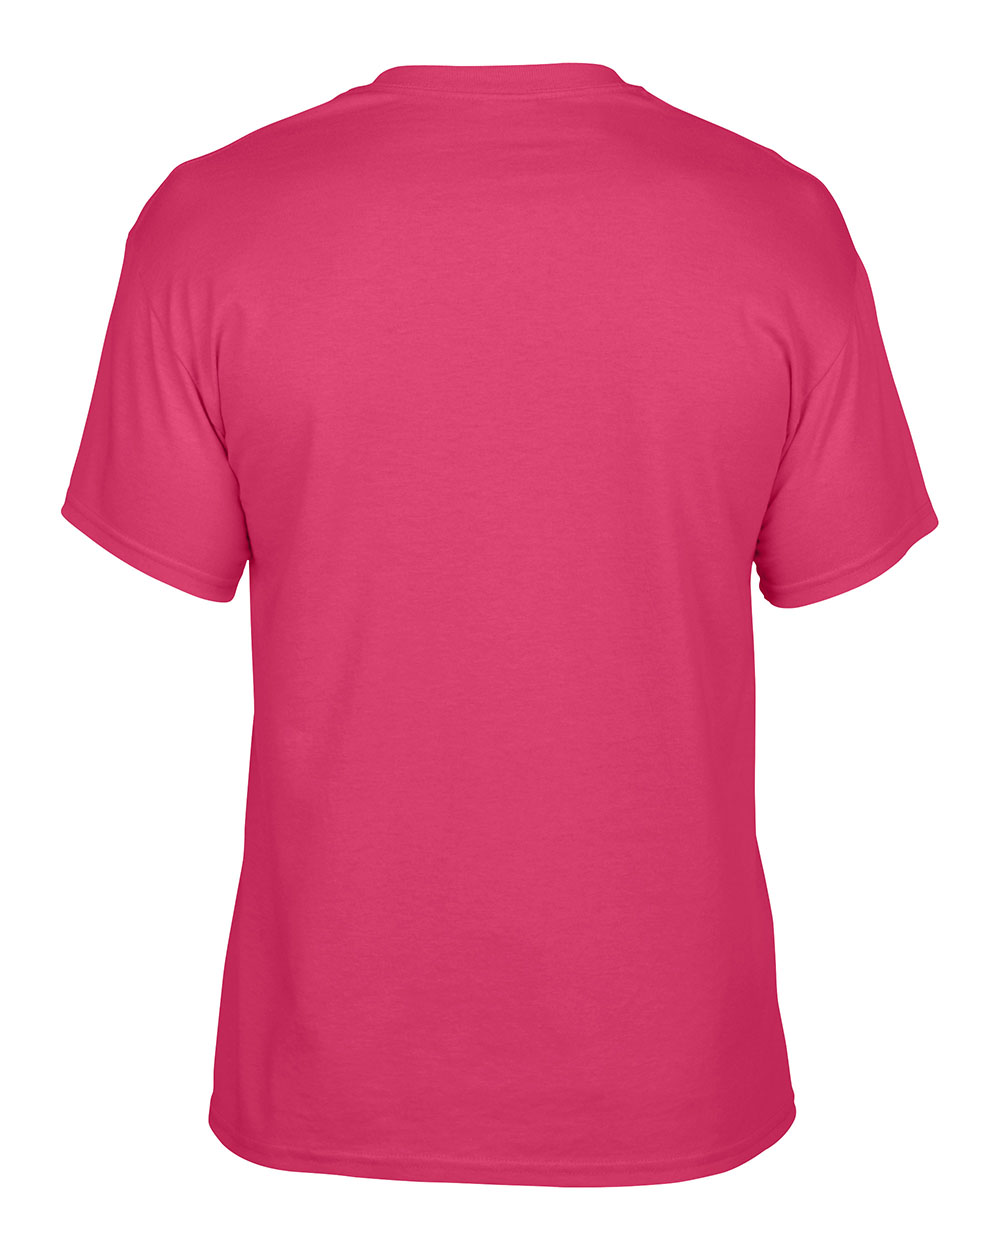 Pink t shirts design your own custom t shirts copy for Custom t shirts design your own